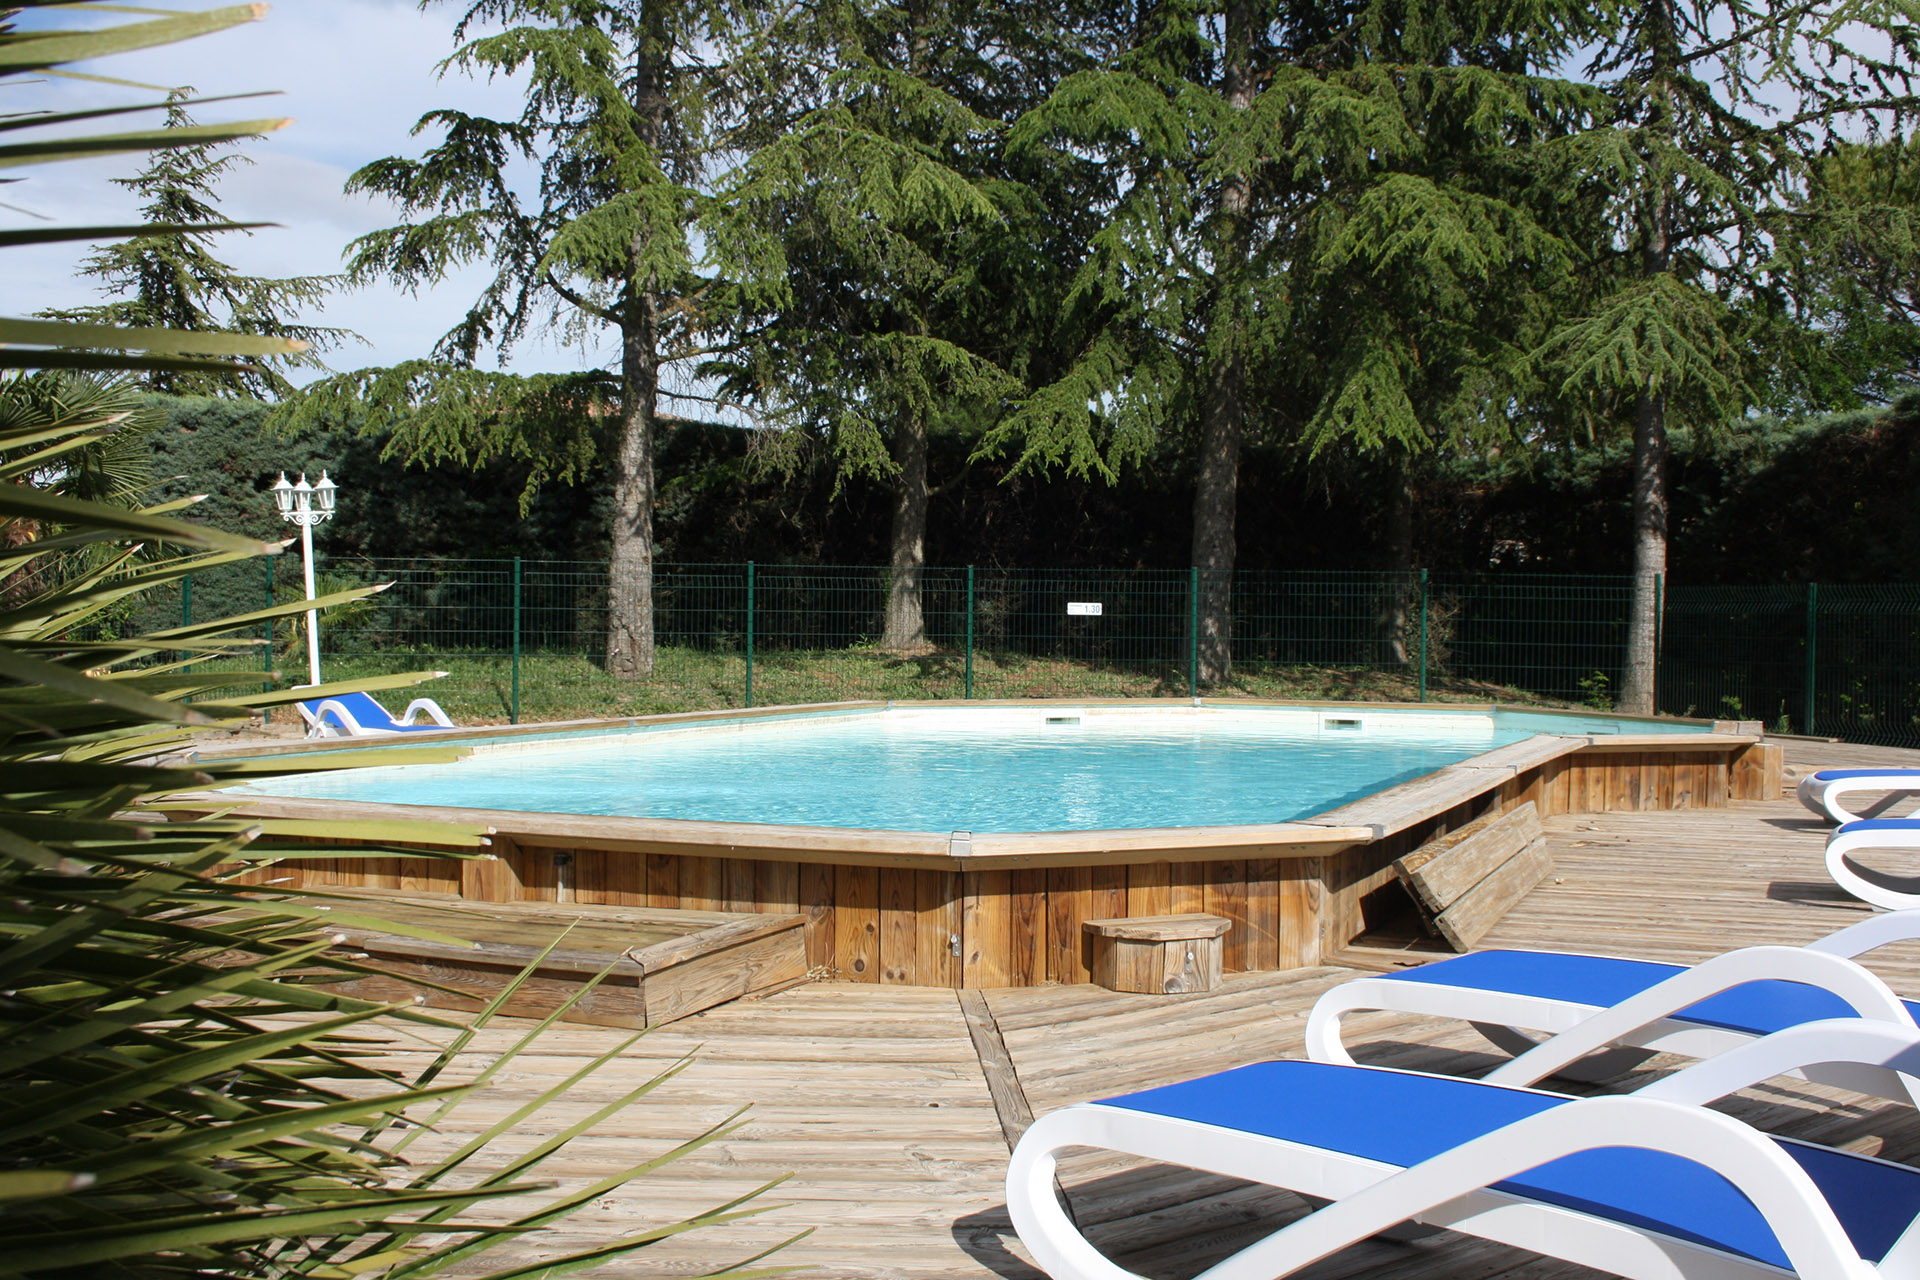 Le camping for Camping vaucluse piscine